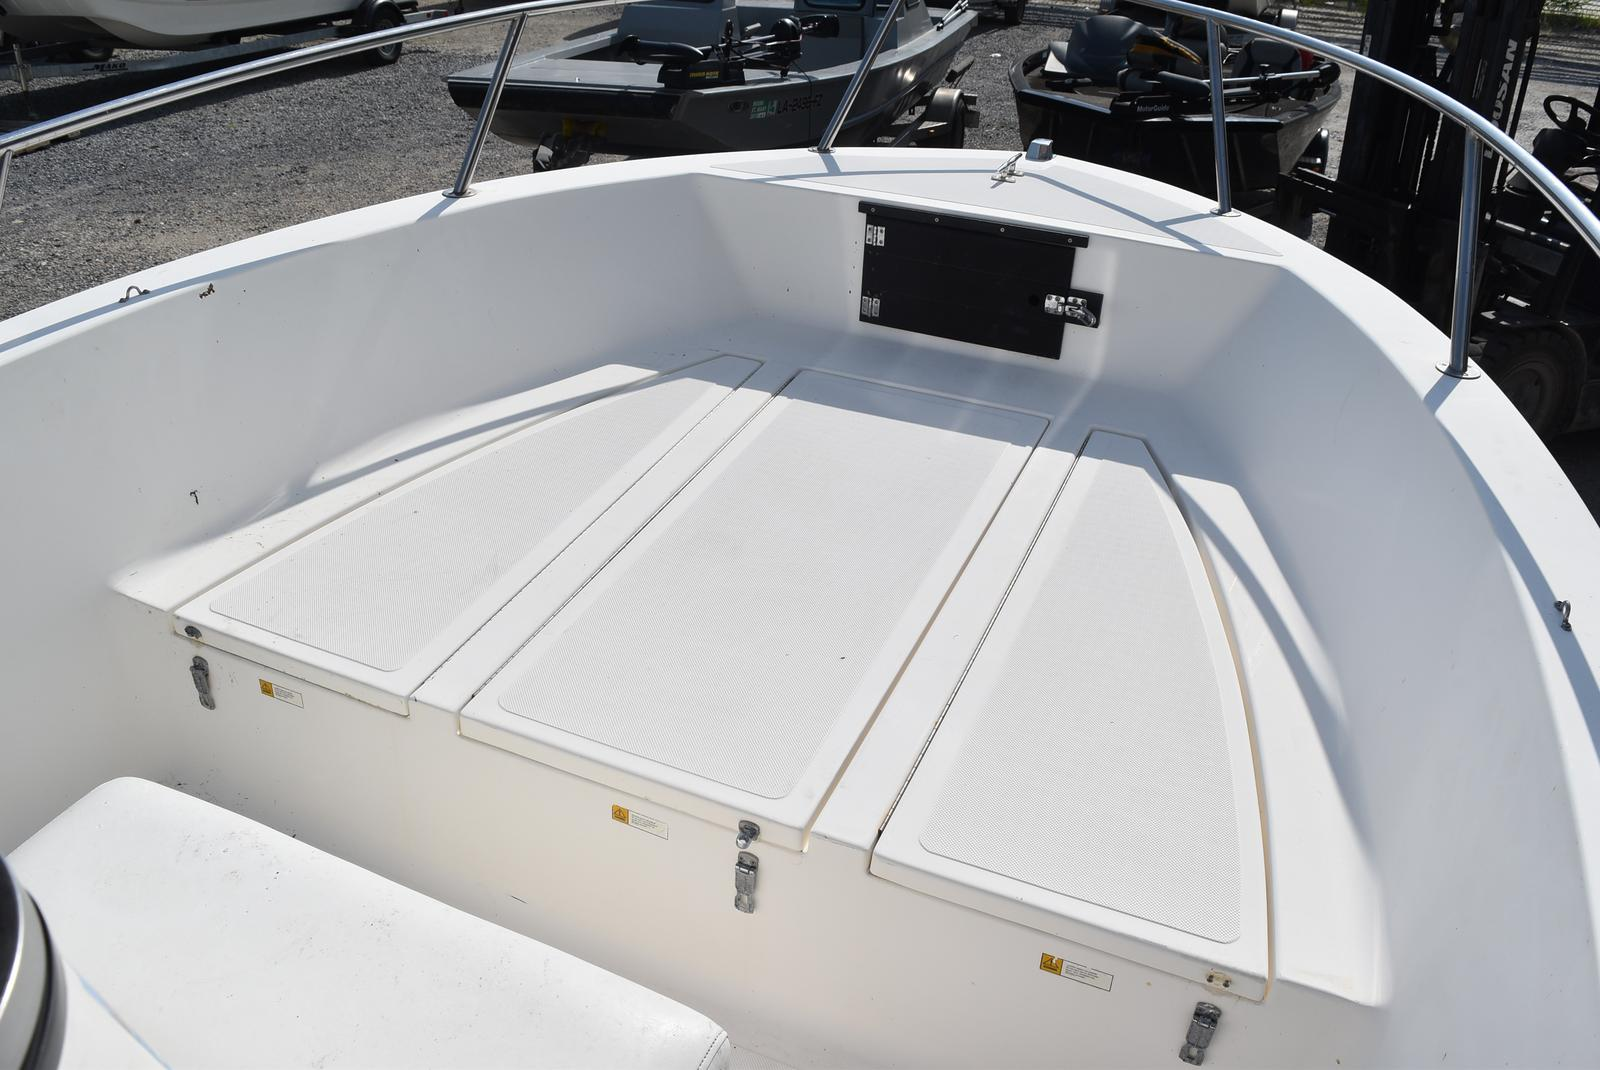 1993 Hydra-Sports boat for sale, model of the boat is 185 & Image # 7 of 14